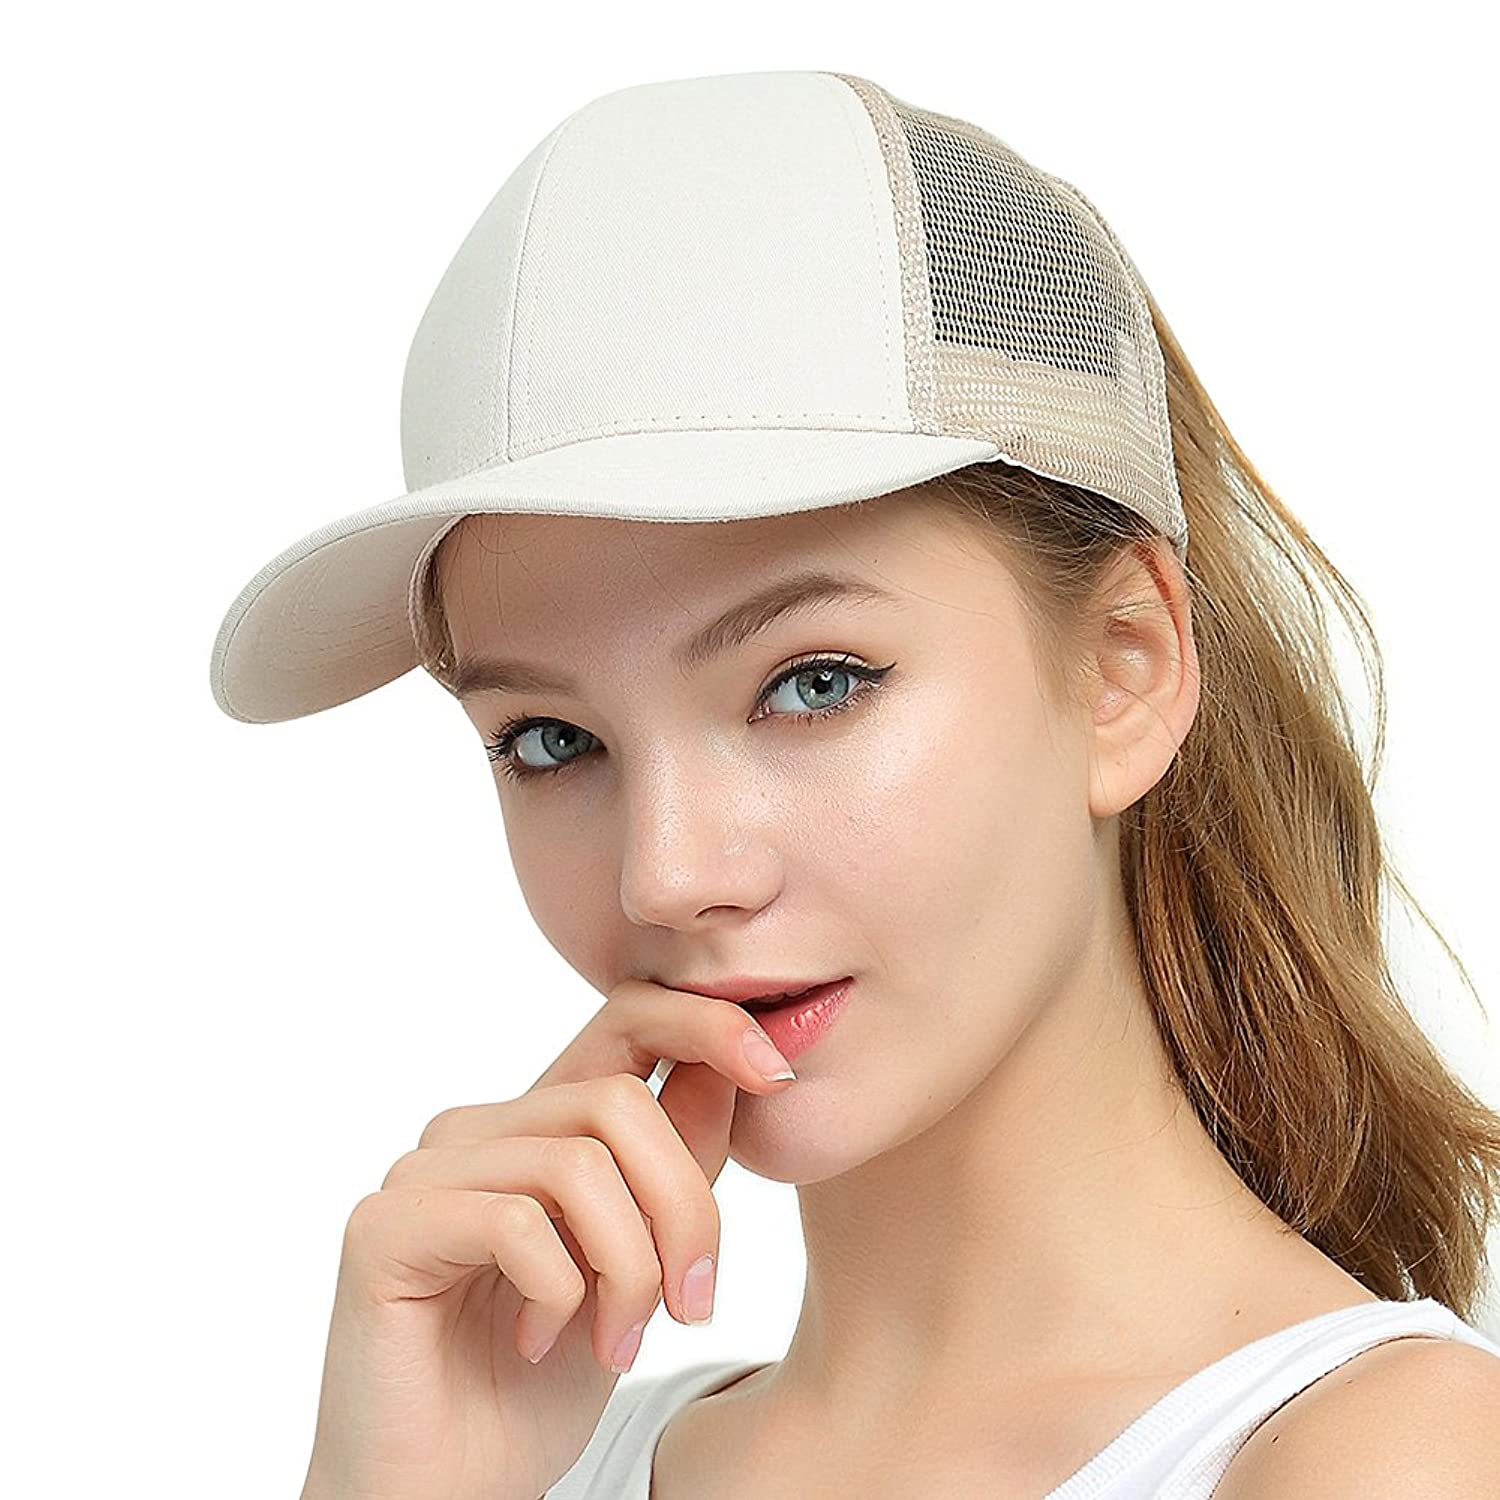 Women's Baseball Caps New Women Ponytail Cap Casual Hat White Black Solid Cotton High Quality Woman Hair Messy Beauty Hat Female Brand Baseball Caps Modern Techniques